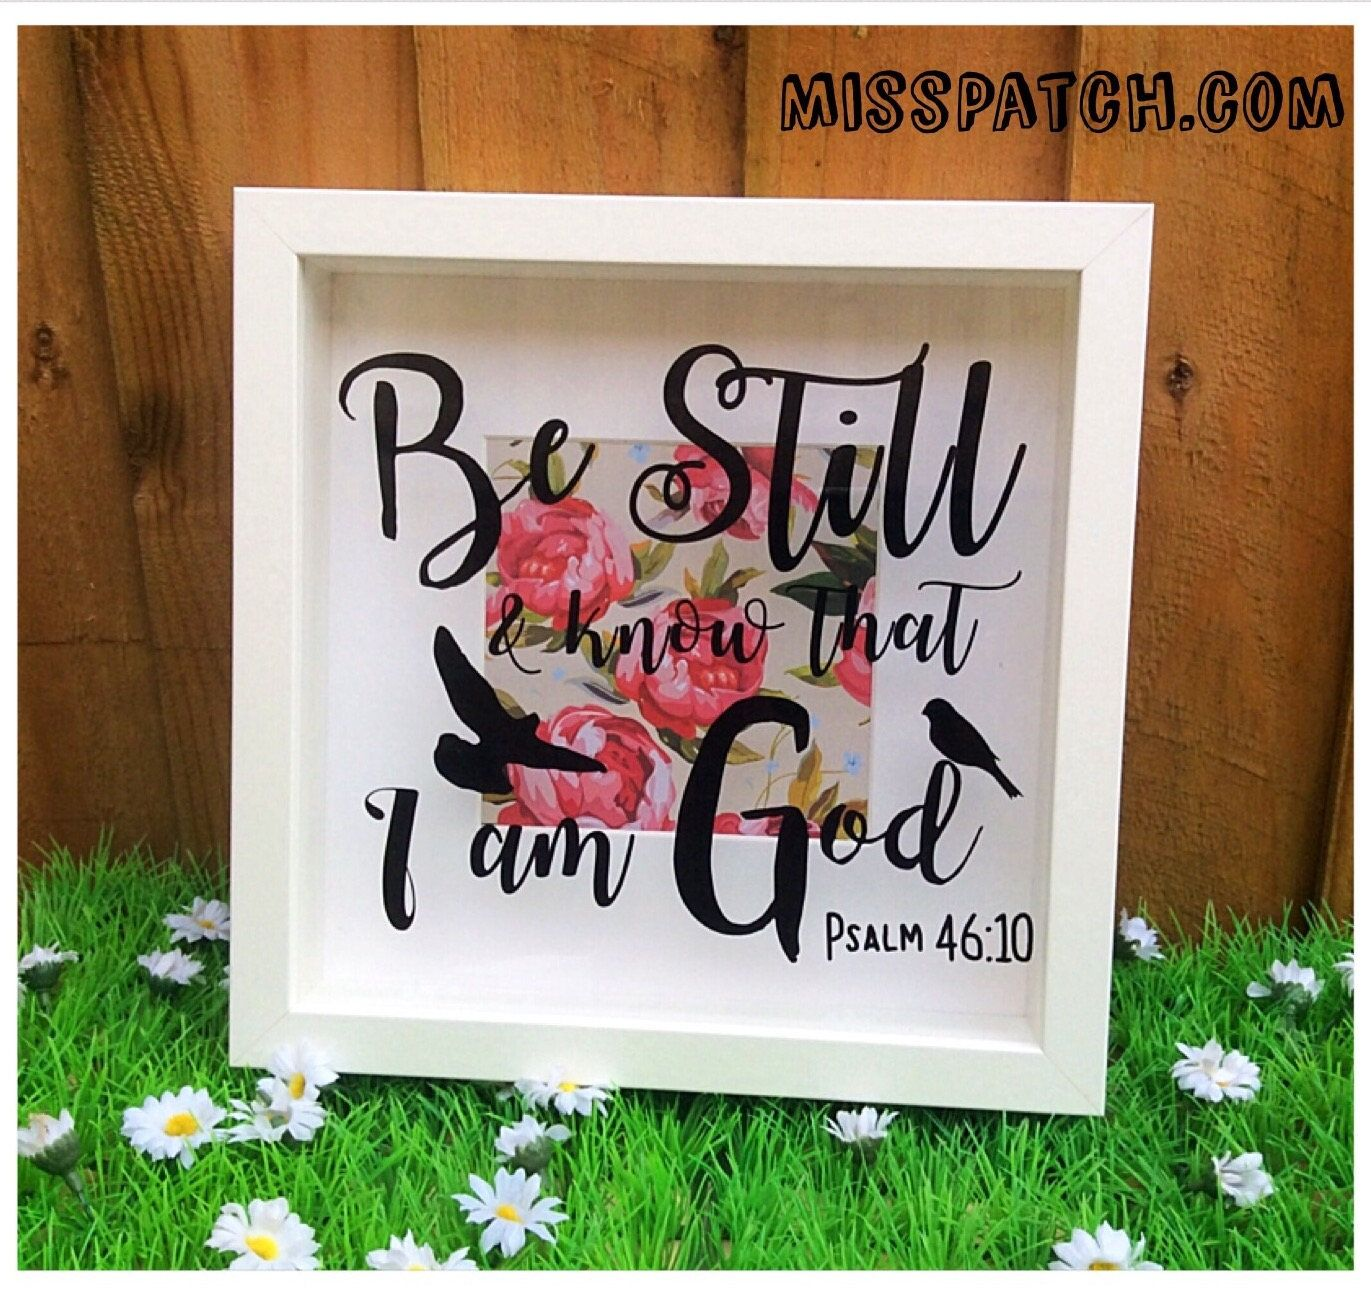 An Inspirational And Motivational Vinyl Box Frame With A Scripture That Reads Be Still And Know That I Am God Box Frames Christmas Shadow Boxes Diy Shadow Box